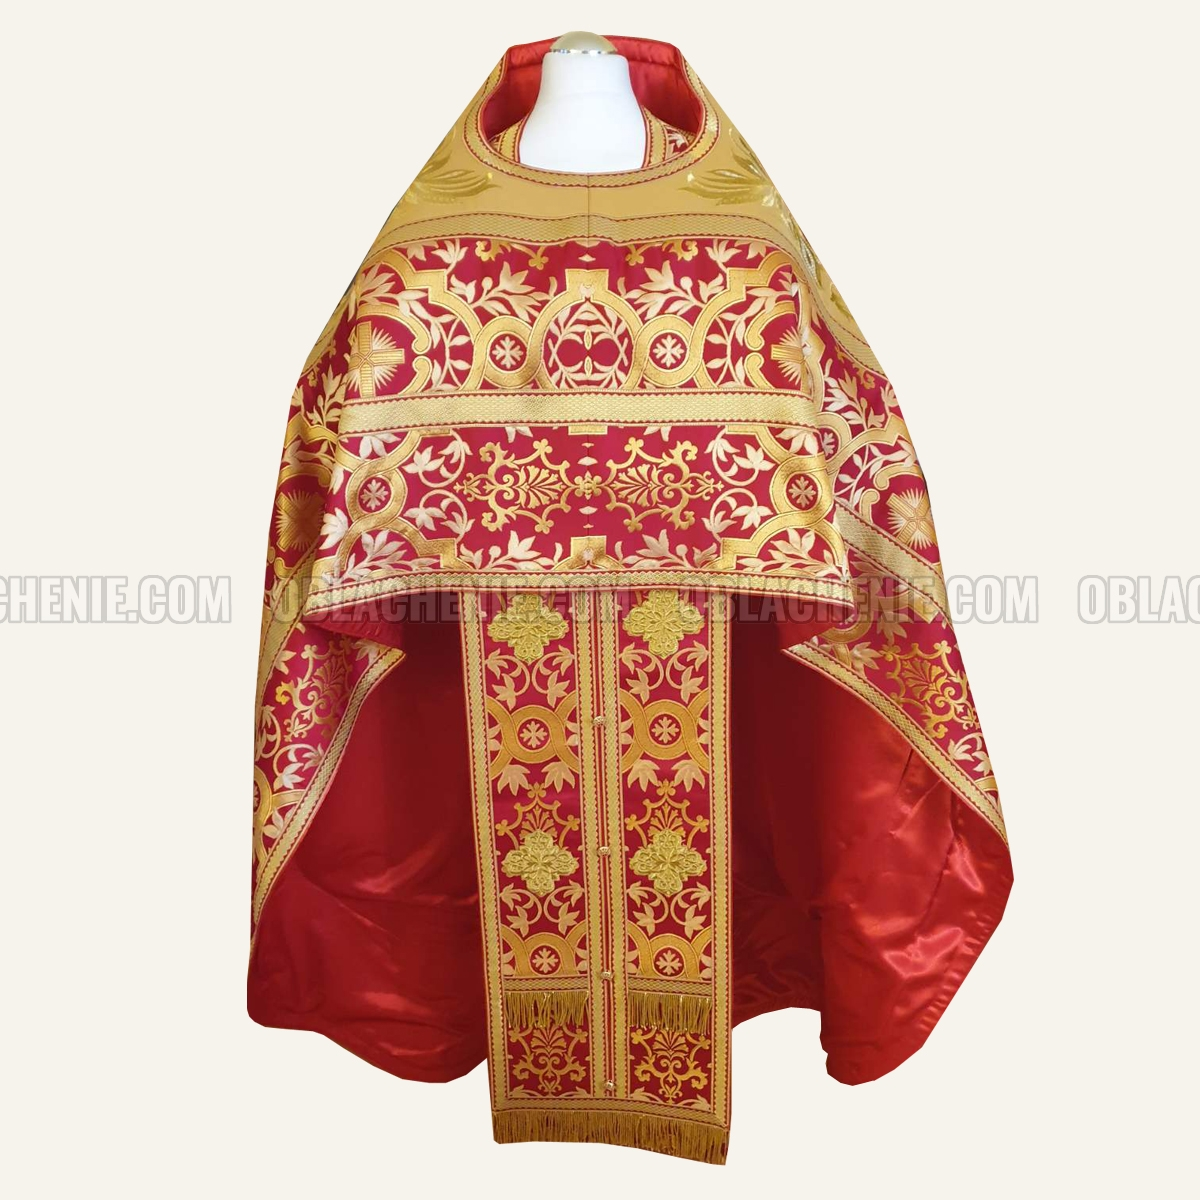 PRIEST'S VESTMENTS 10951